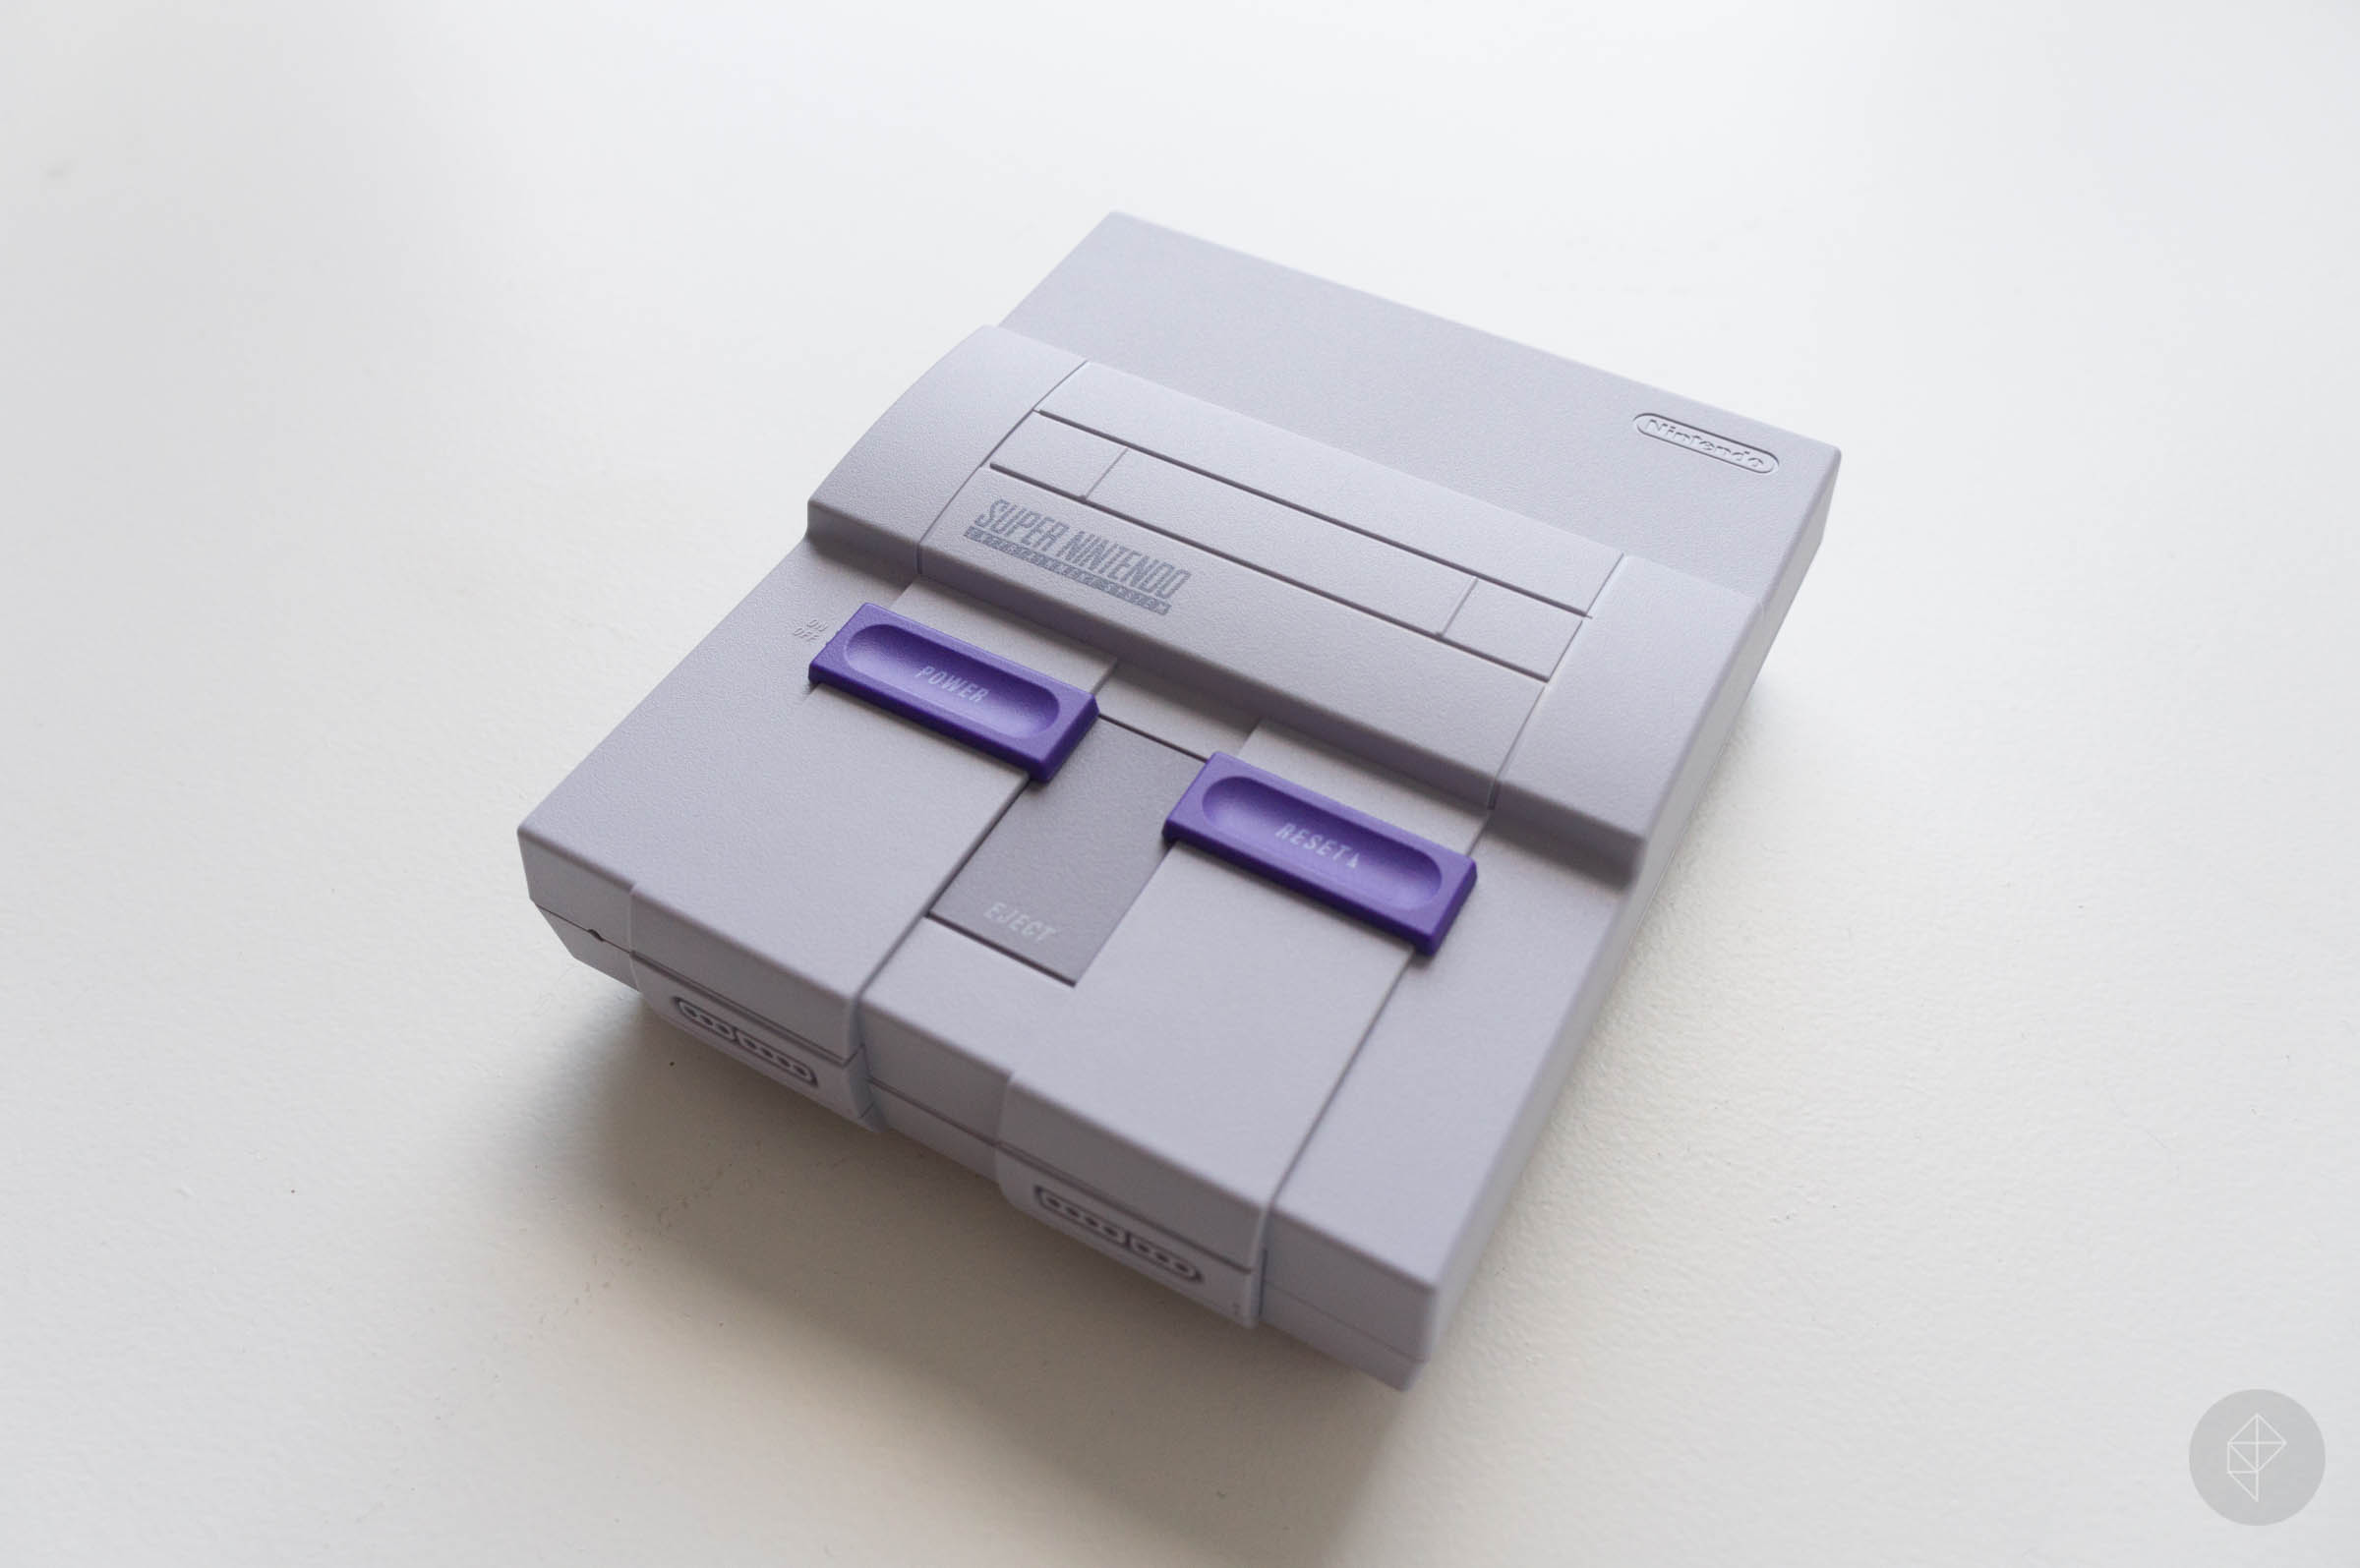 SNES Classic Edition: Our first look at the hardware